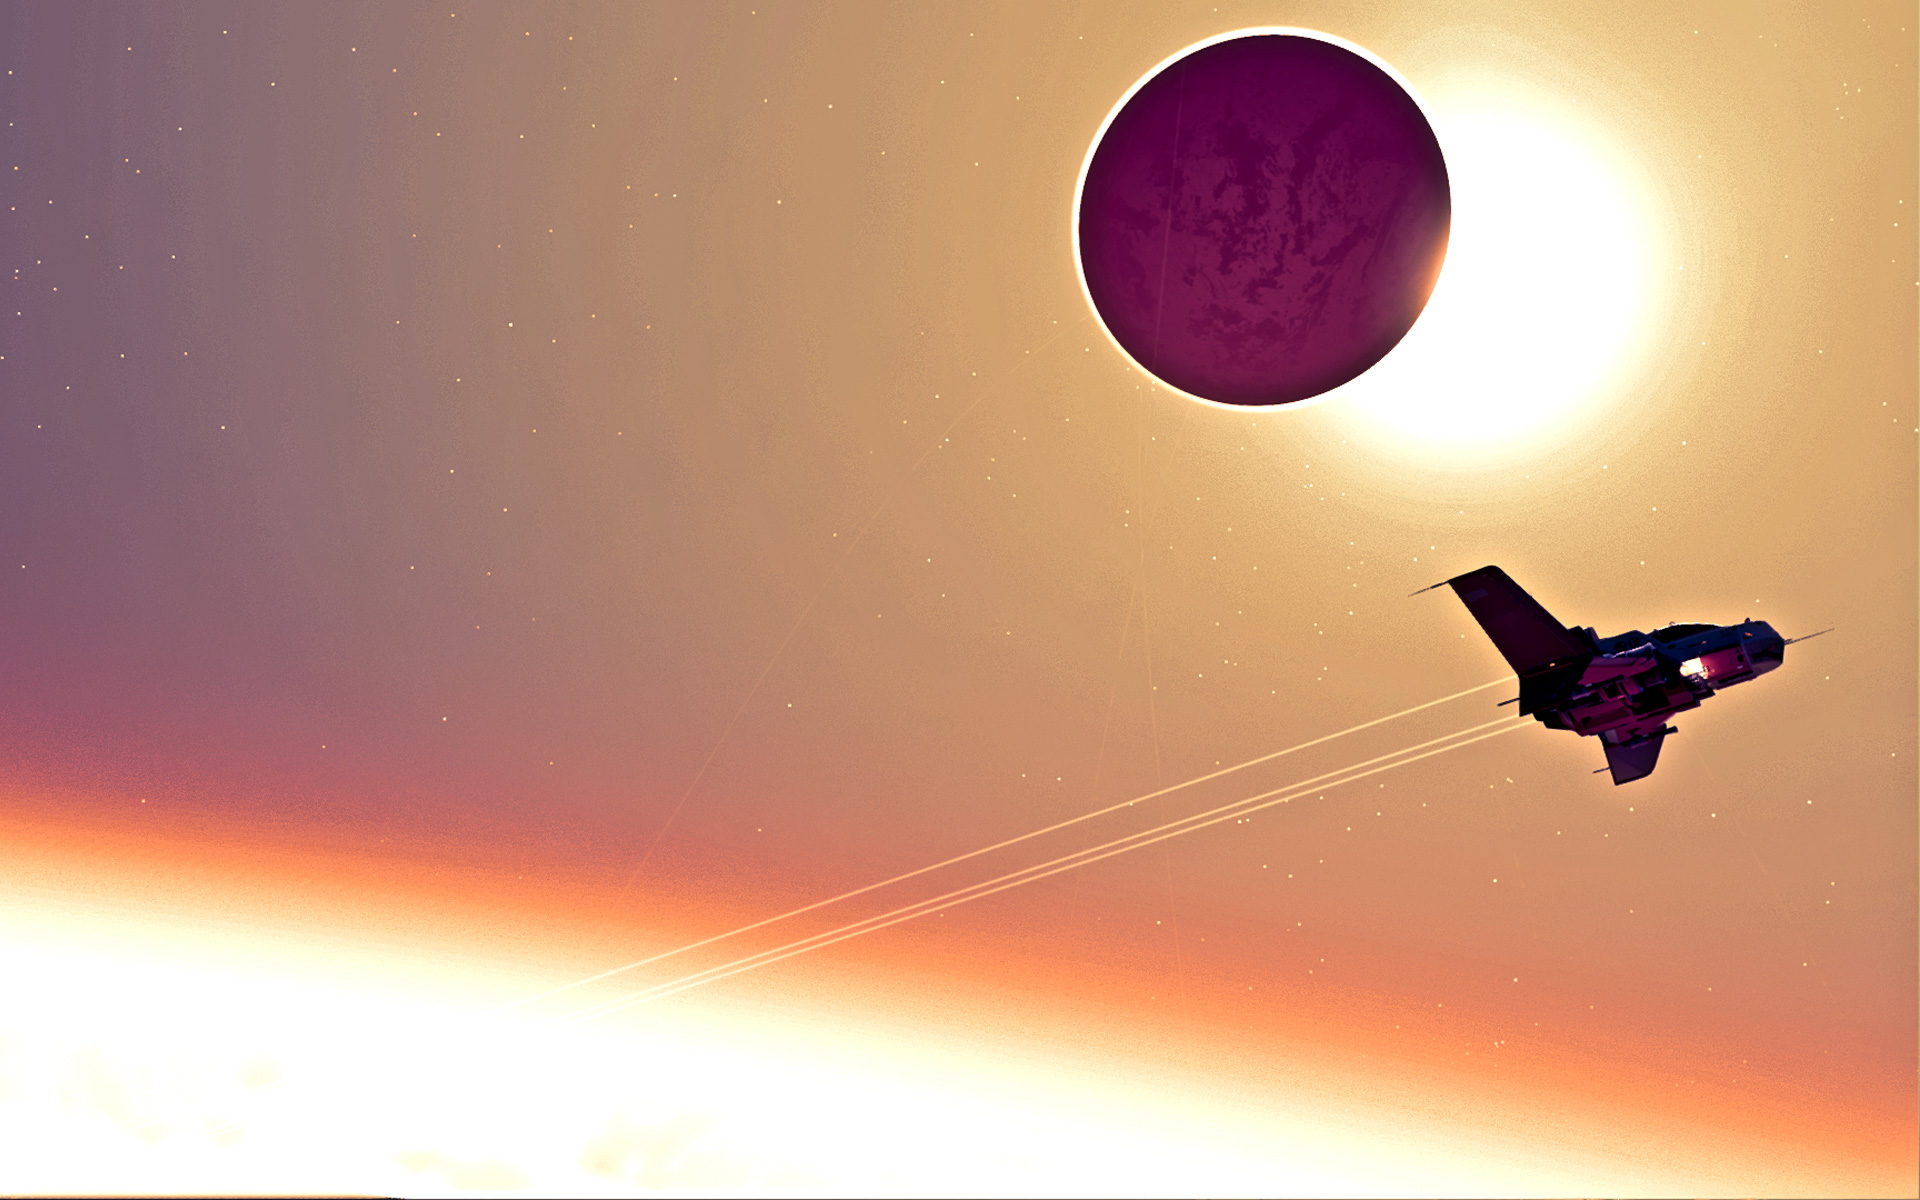 No Man's Sky Wallpaper in 1920x1200